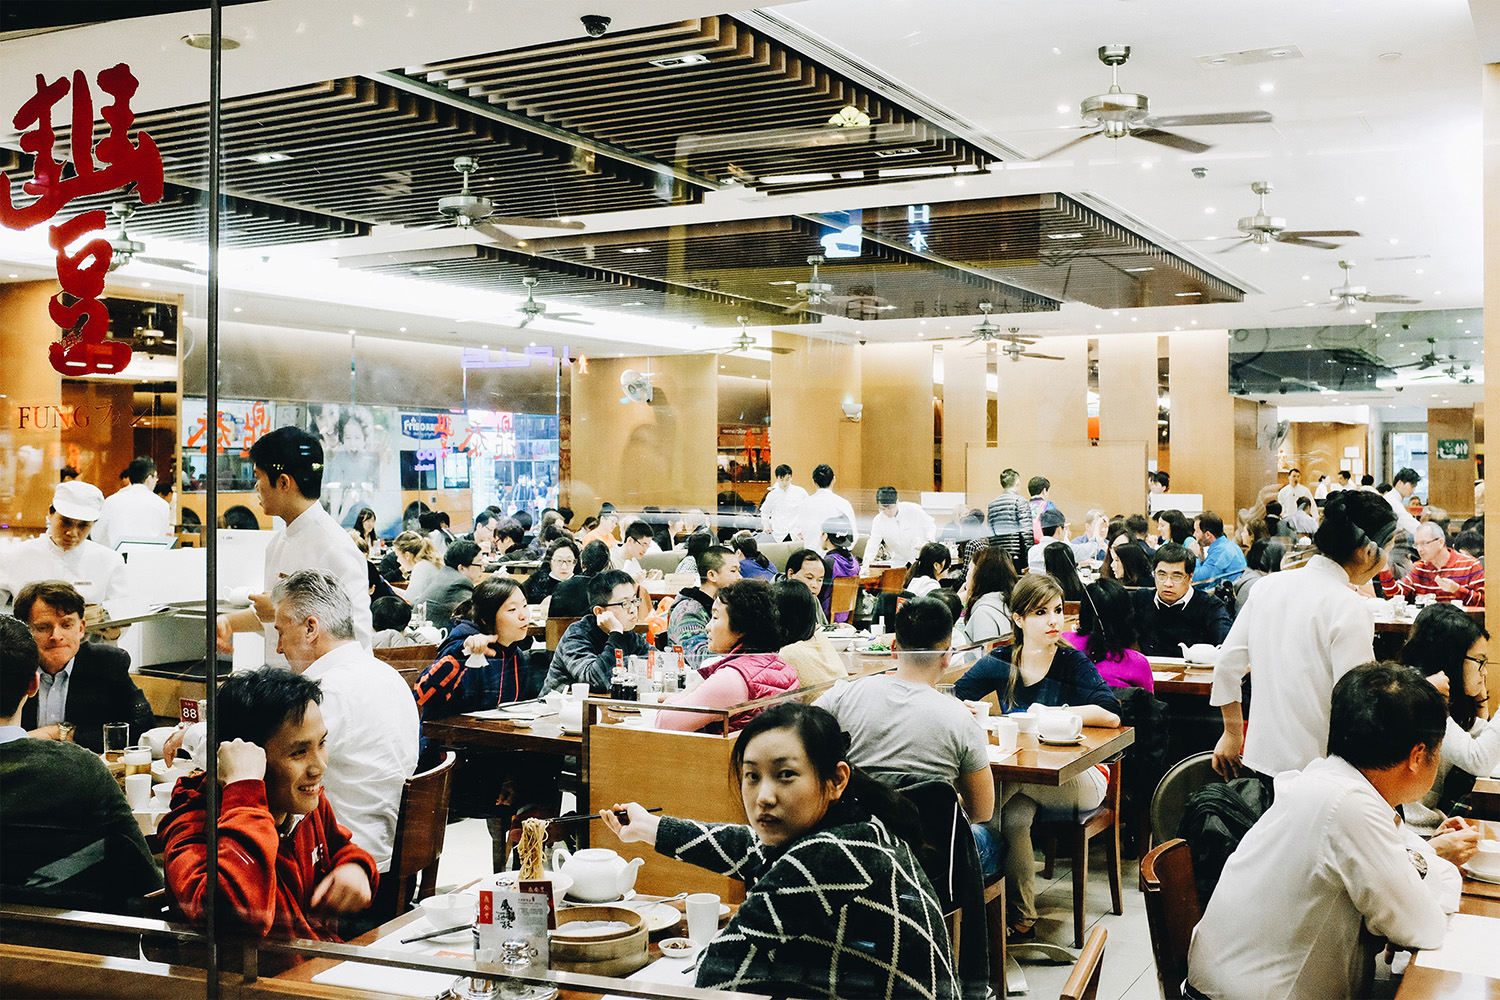 dintaifung5